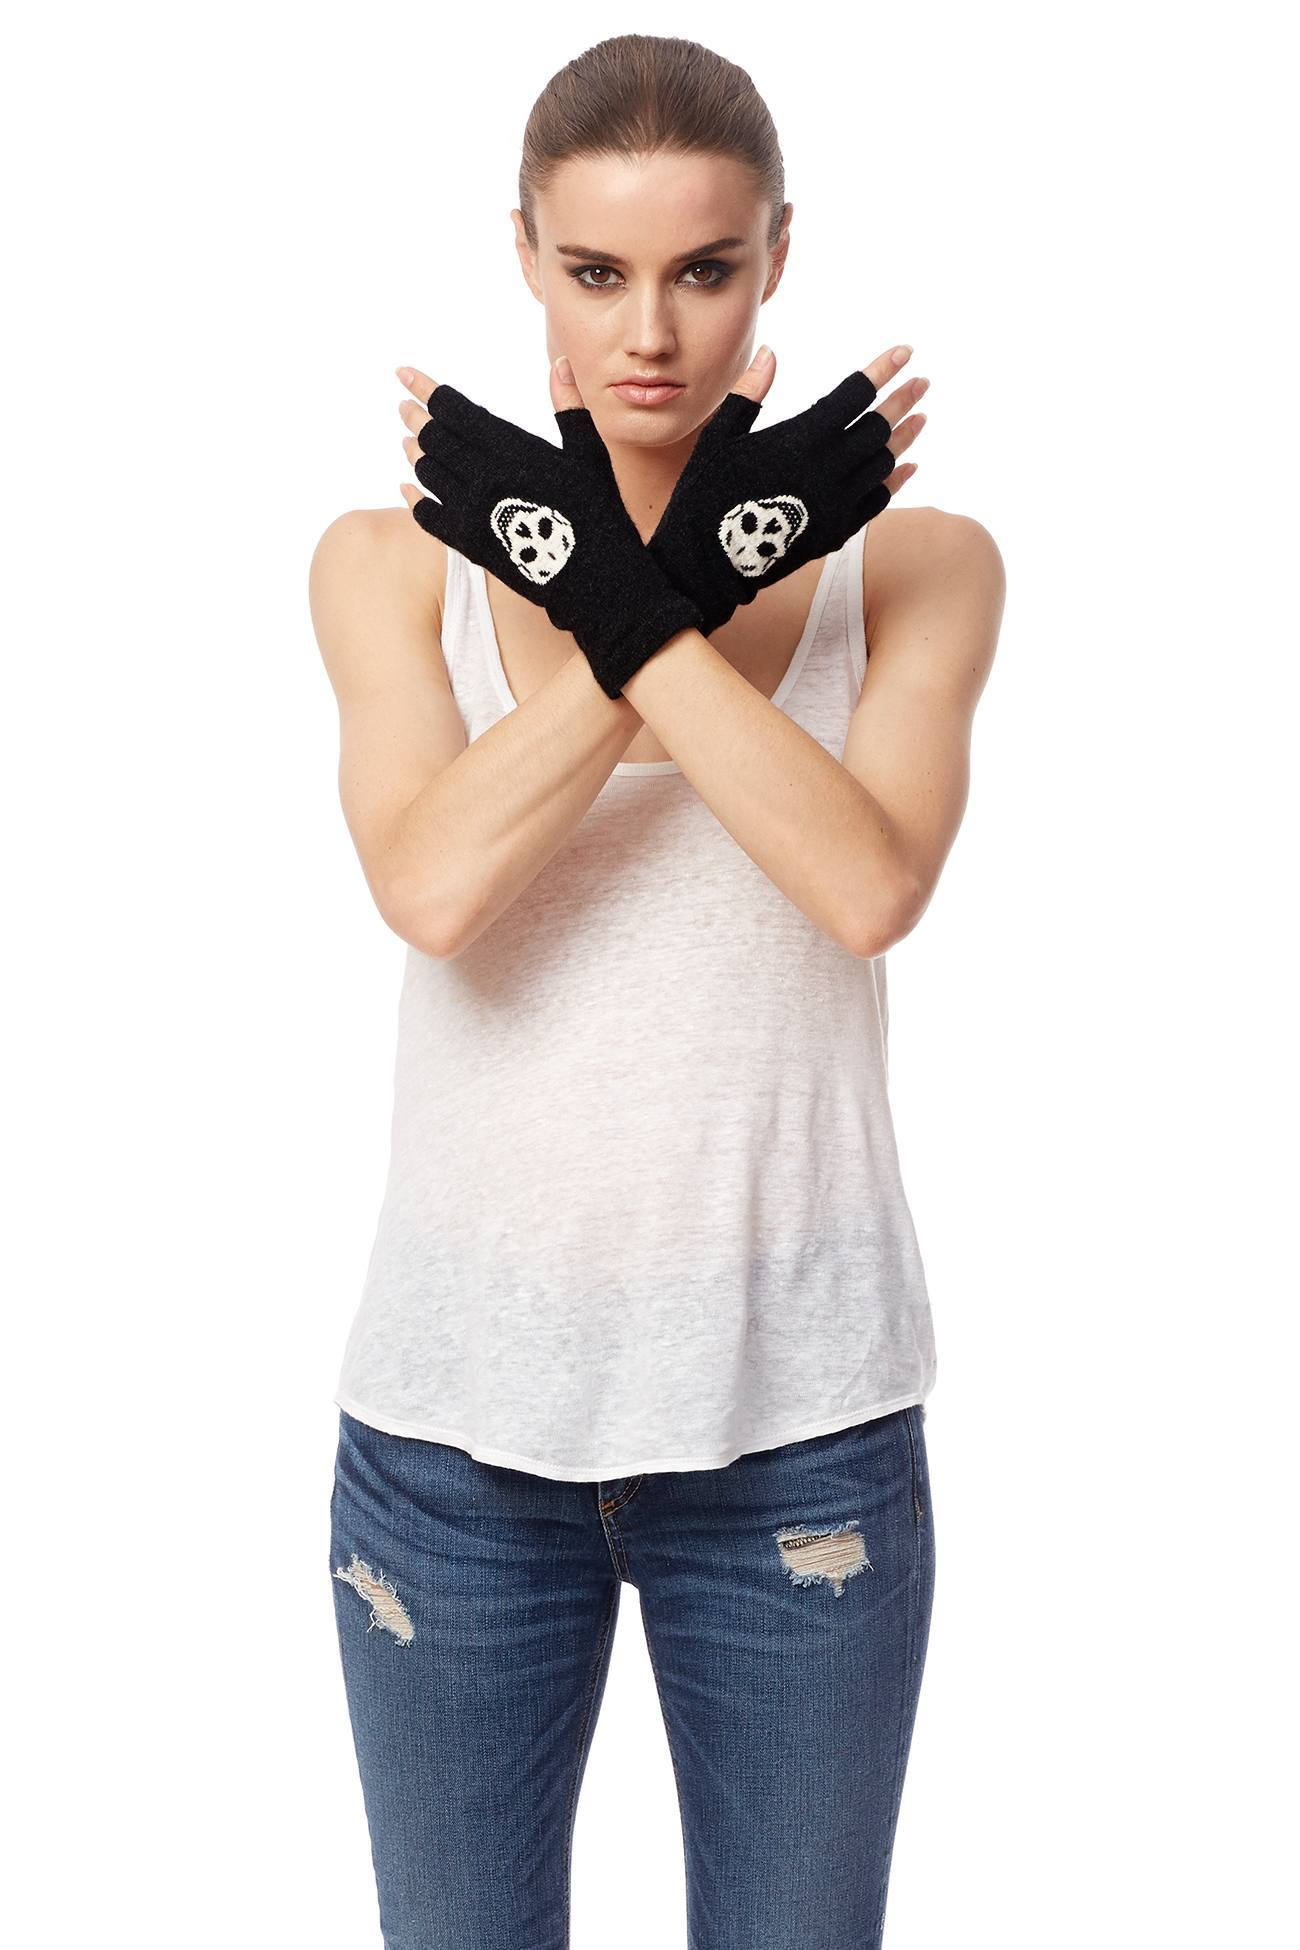 360 Sweater Company Skull Gloves 42965